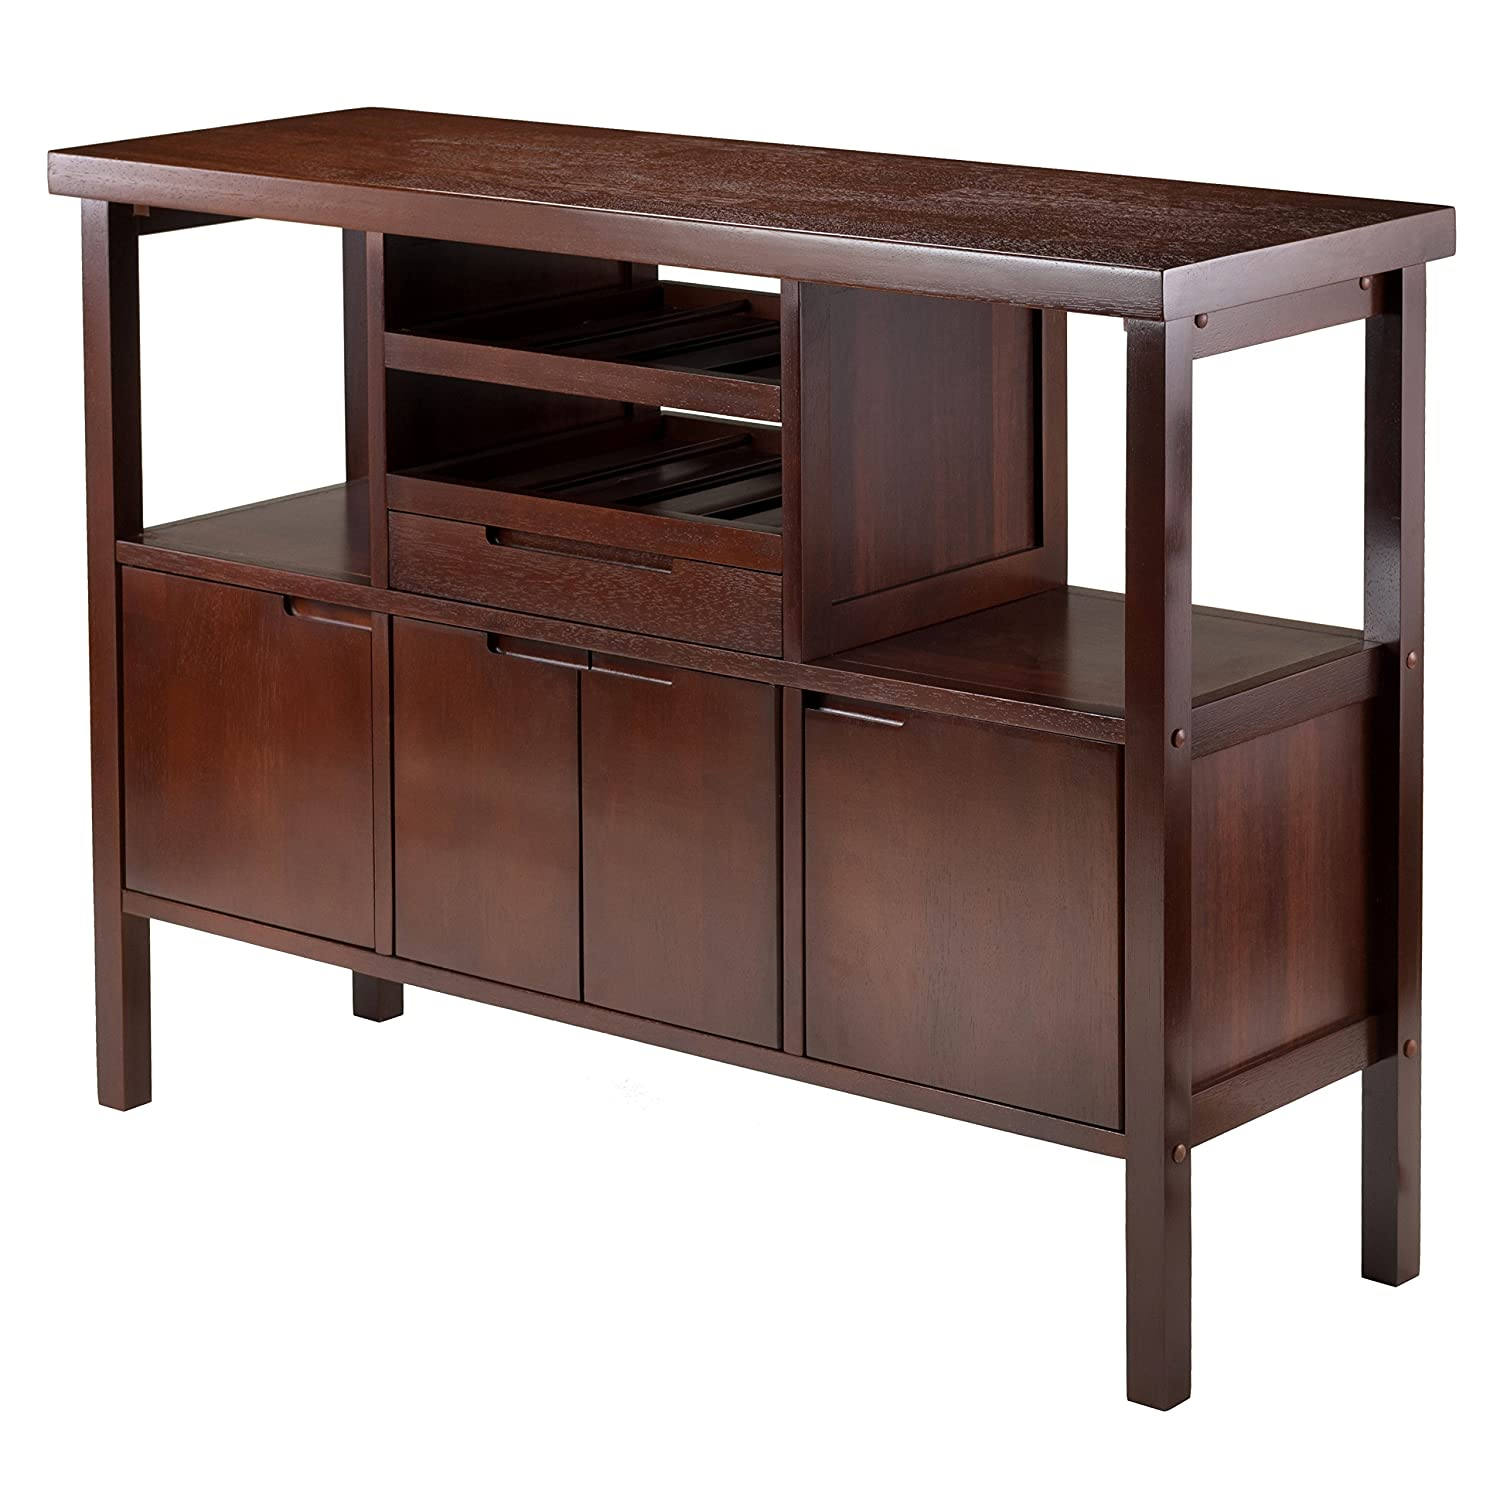 Winsome Diego Buffet-Sideboard Table - Brown